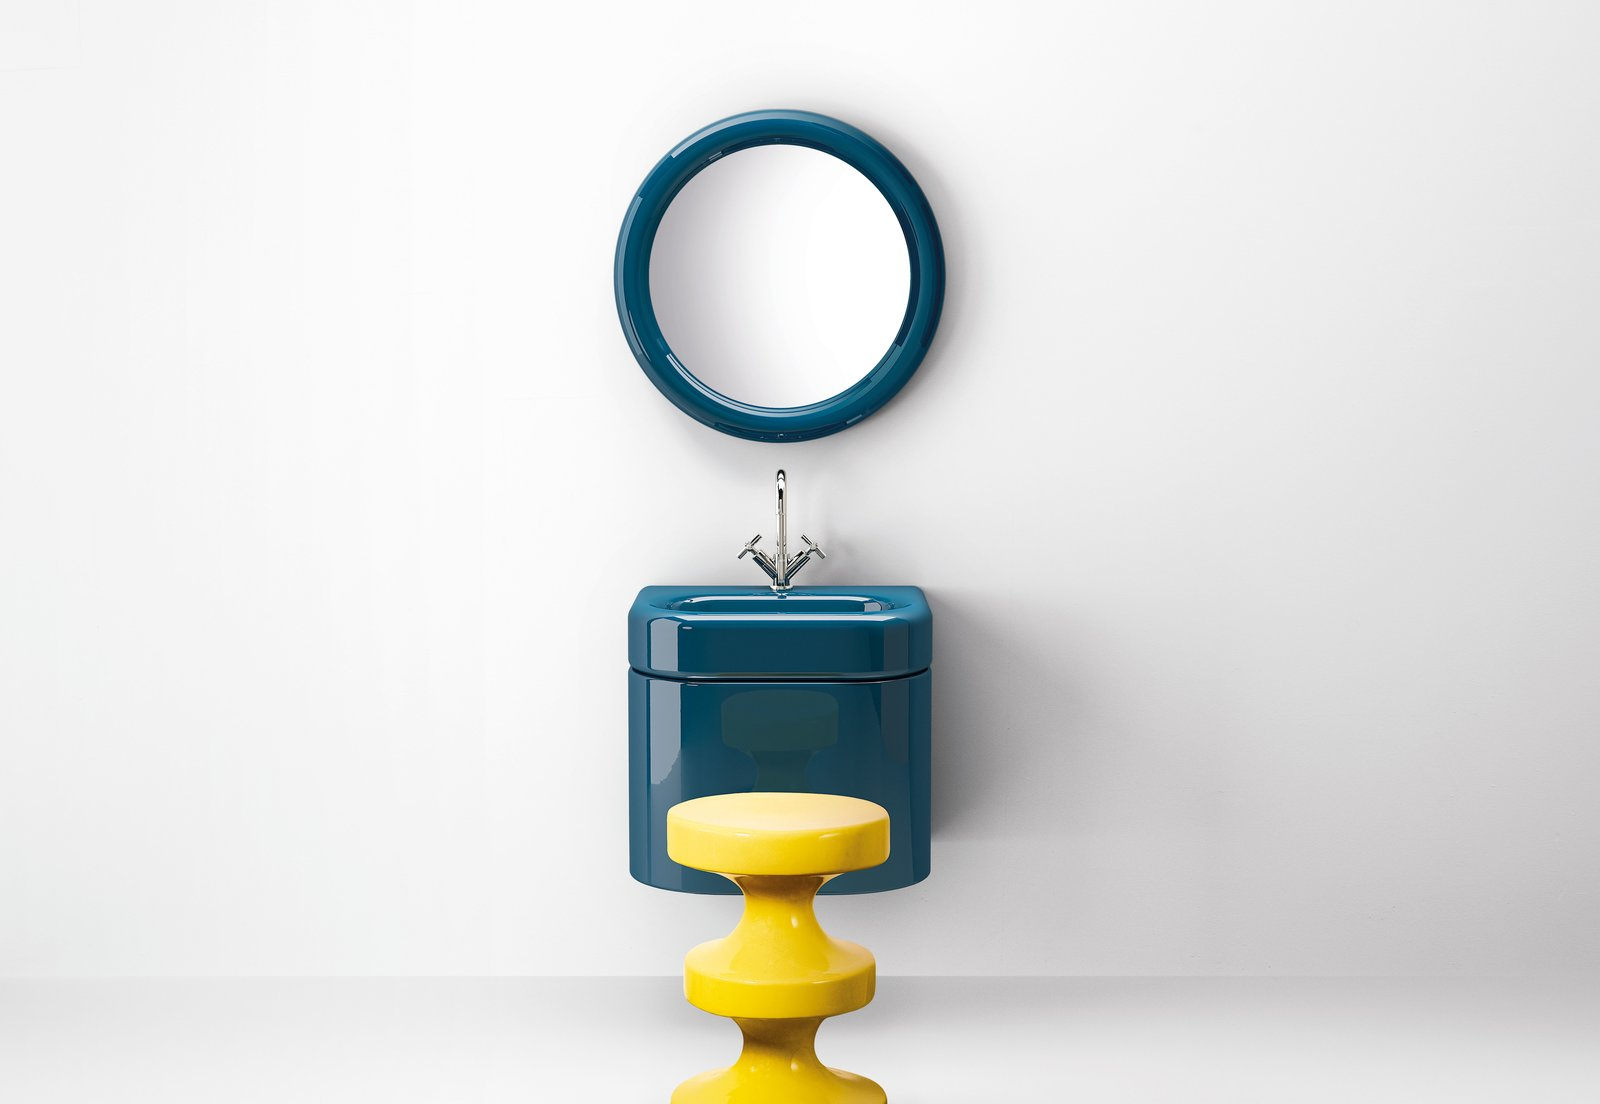 Bath and Wall Mount The collection of bathroom fixtures includes a wall-mounted sink and vanity, a bathtub, and a round mirror.  Best Bath Photos from Trend Report: Bathroom Fixtures Go Bold in a Rainbow of Retro Hues